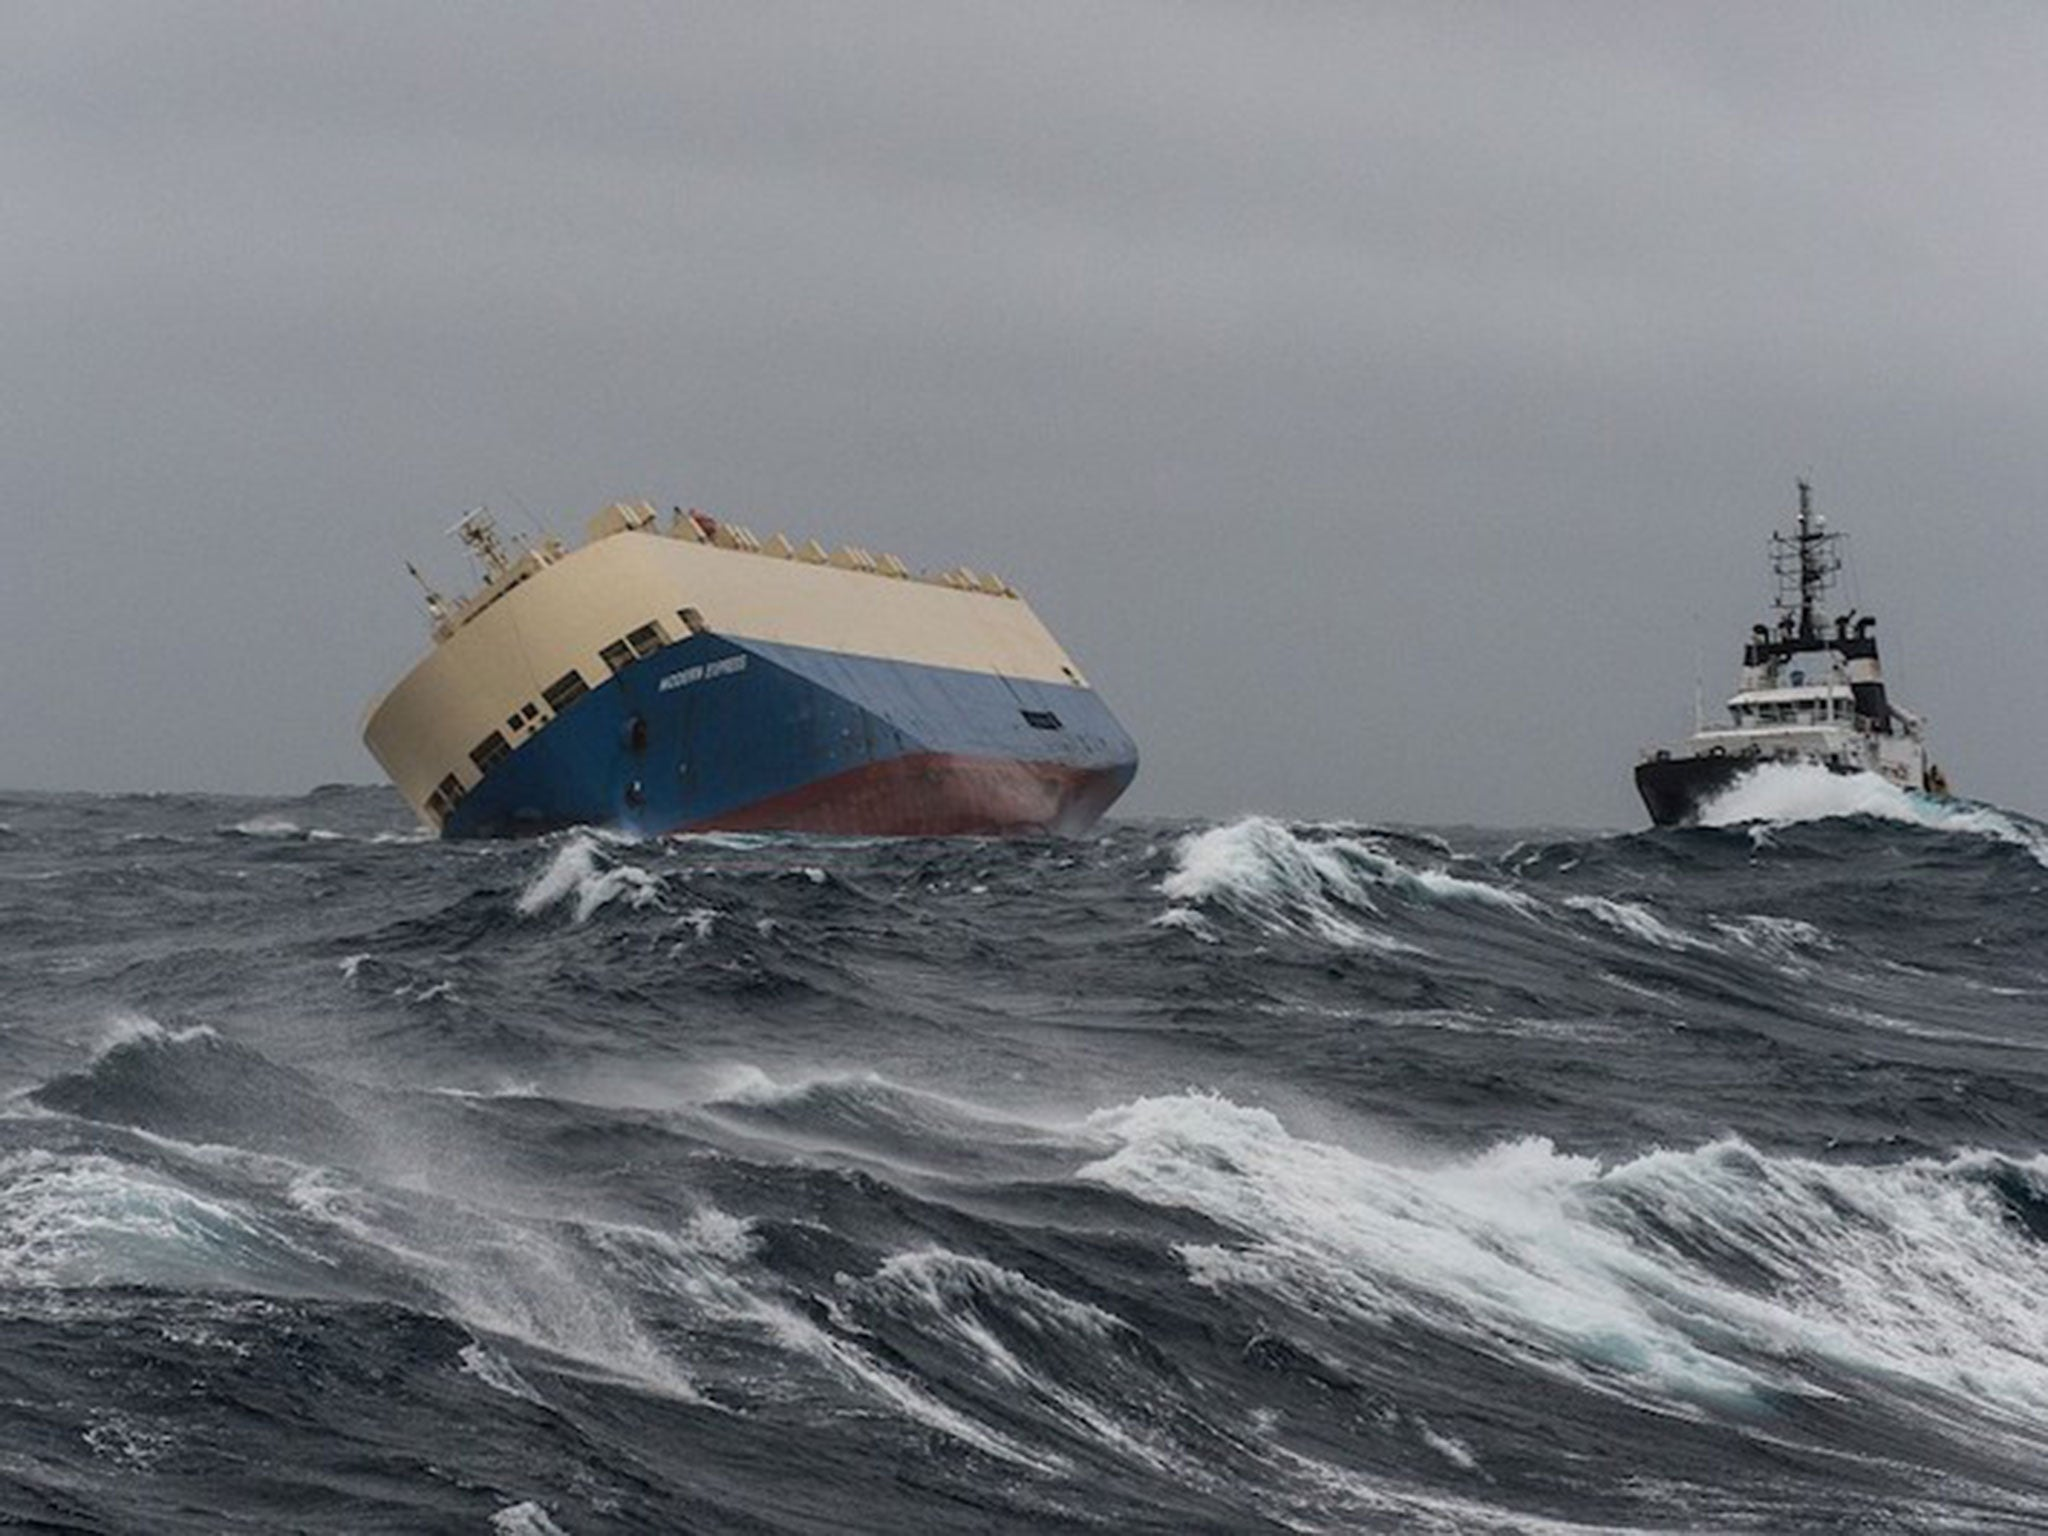 Unmanned cargo ship carrying 300 tons of diesel set to run aground on French Atlantic coast